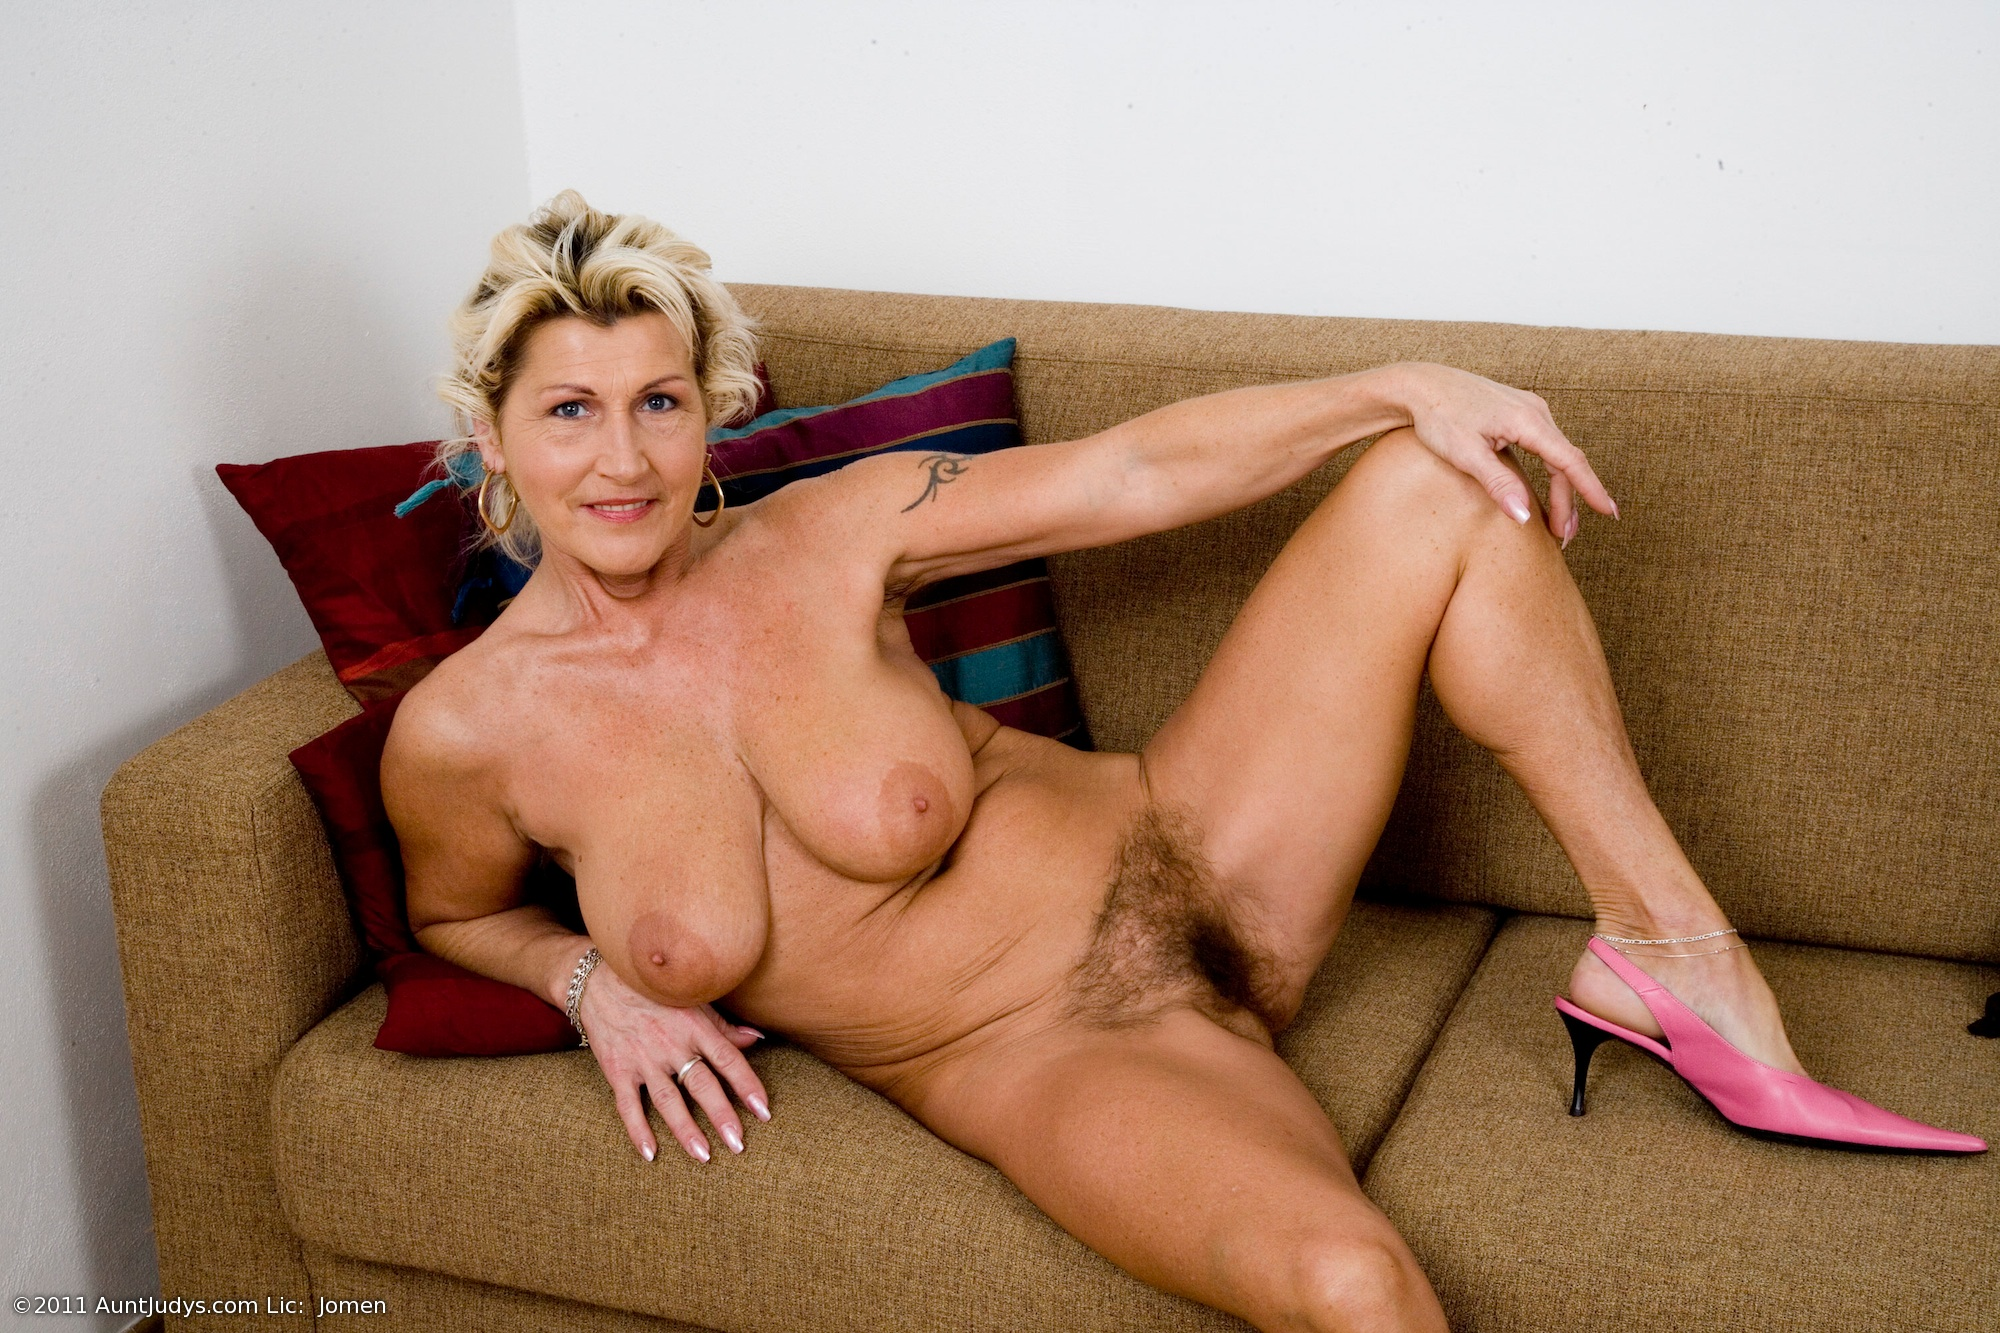 Sexy mature nudes 60 plus